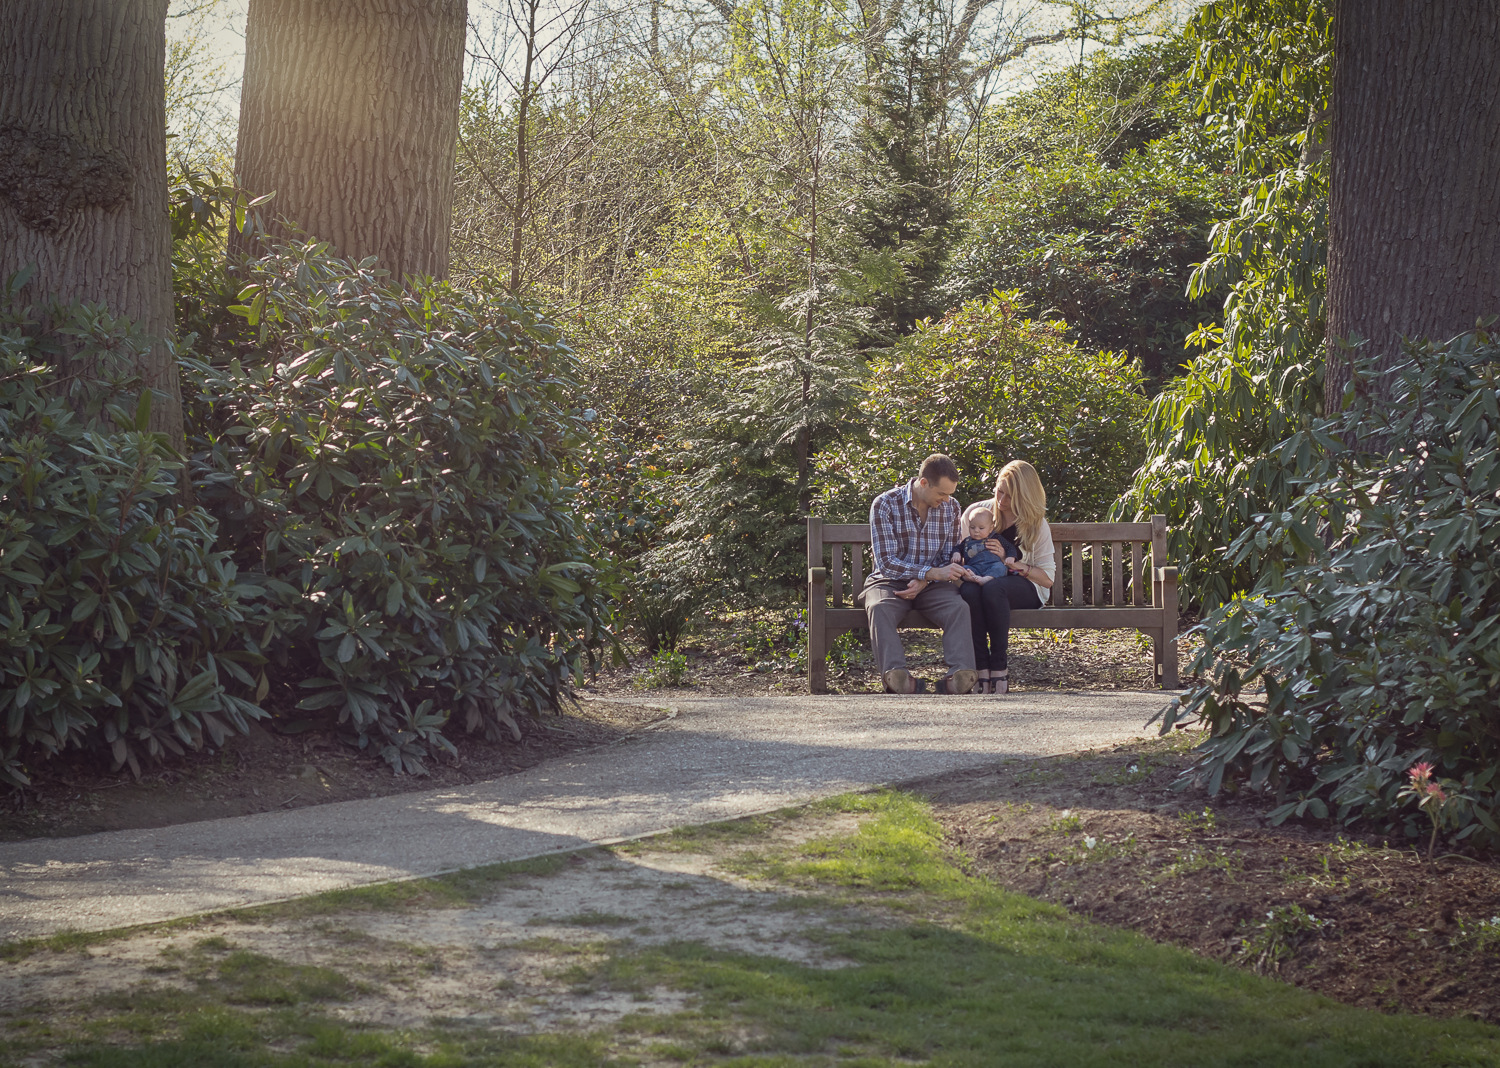 Landscape photograph at the beautiful Dunorlan Park in Tunbridge Wells, displaying a Mum, Dad and their little boy resting on a bench